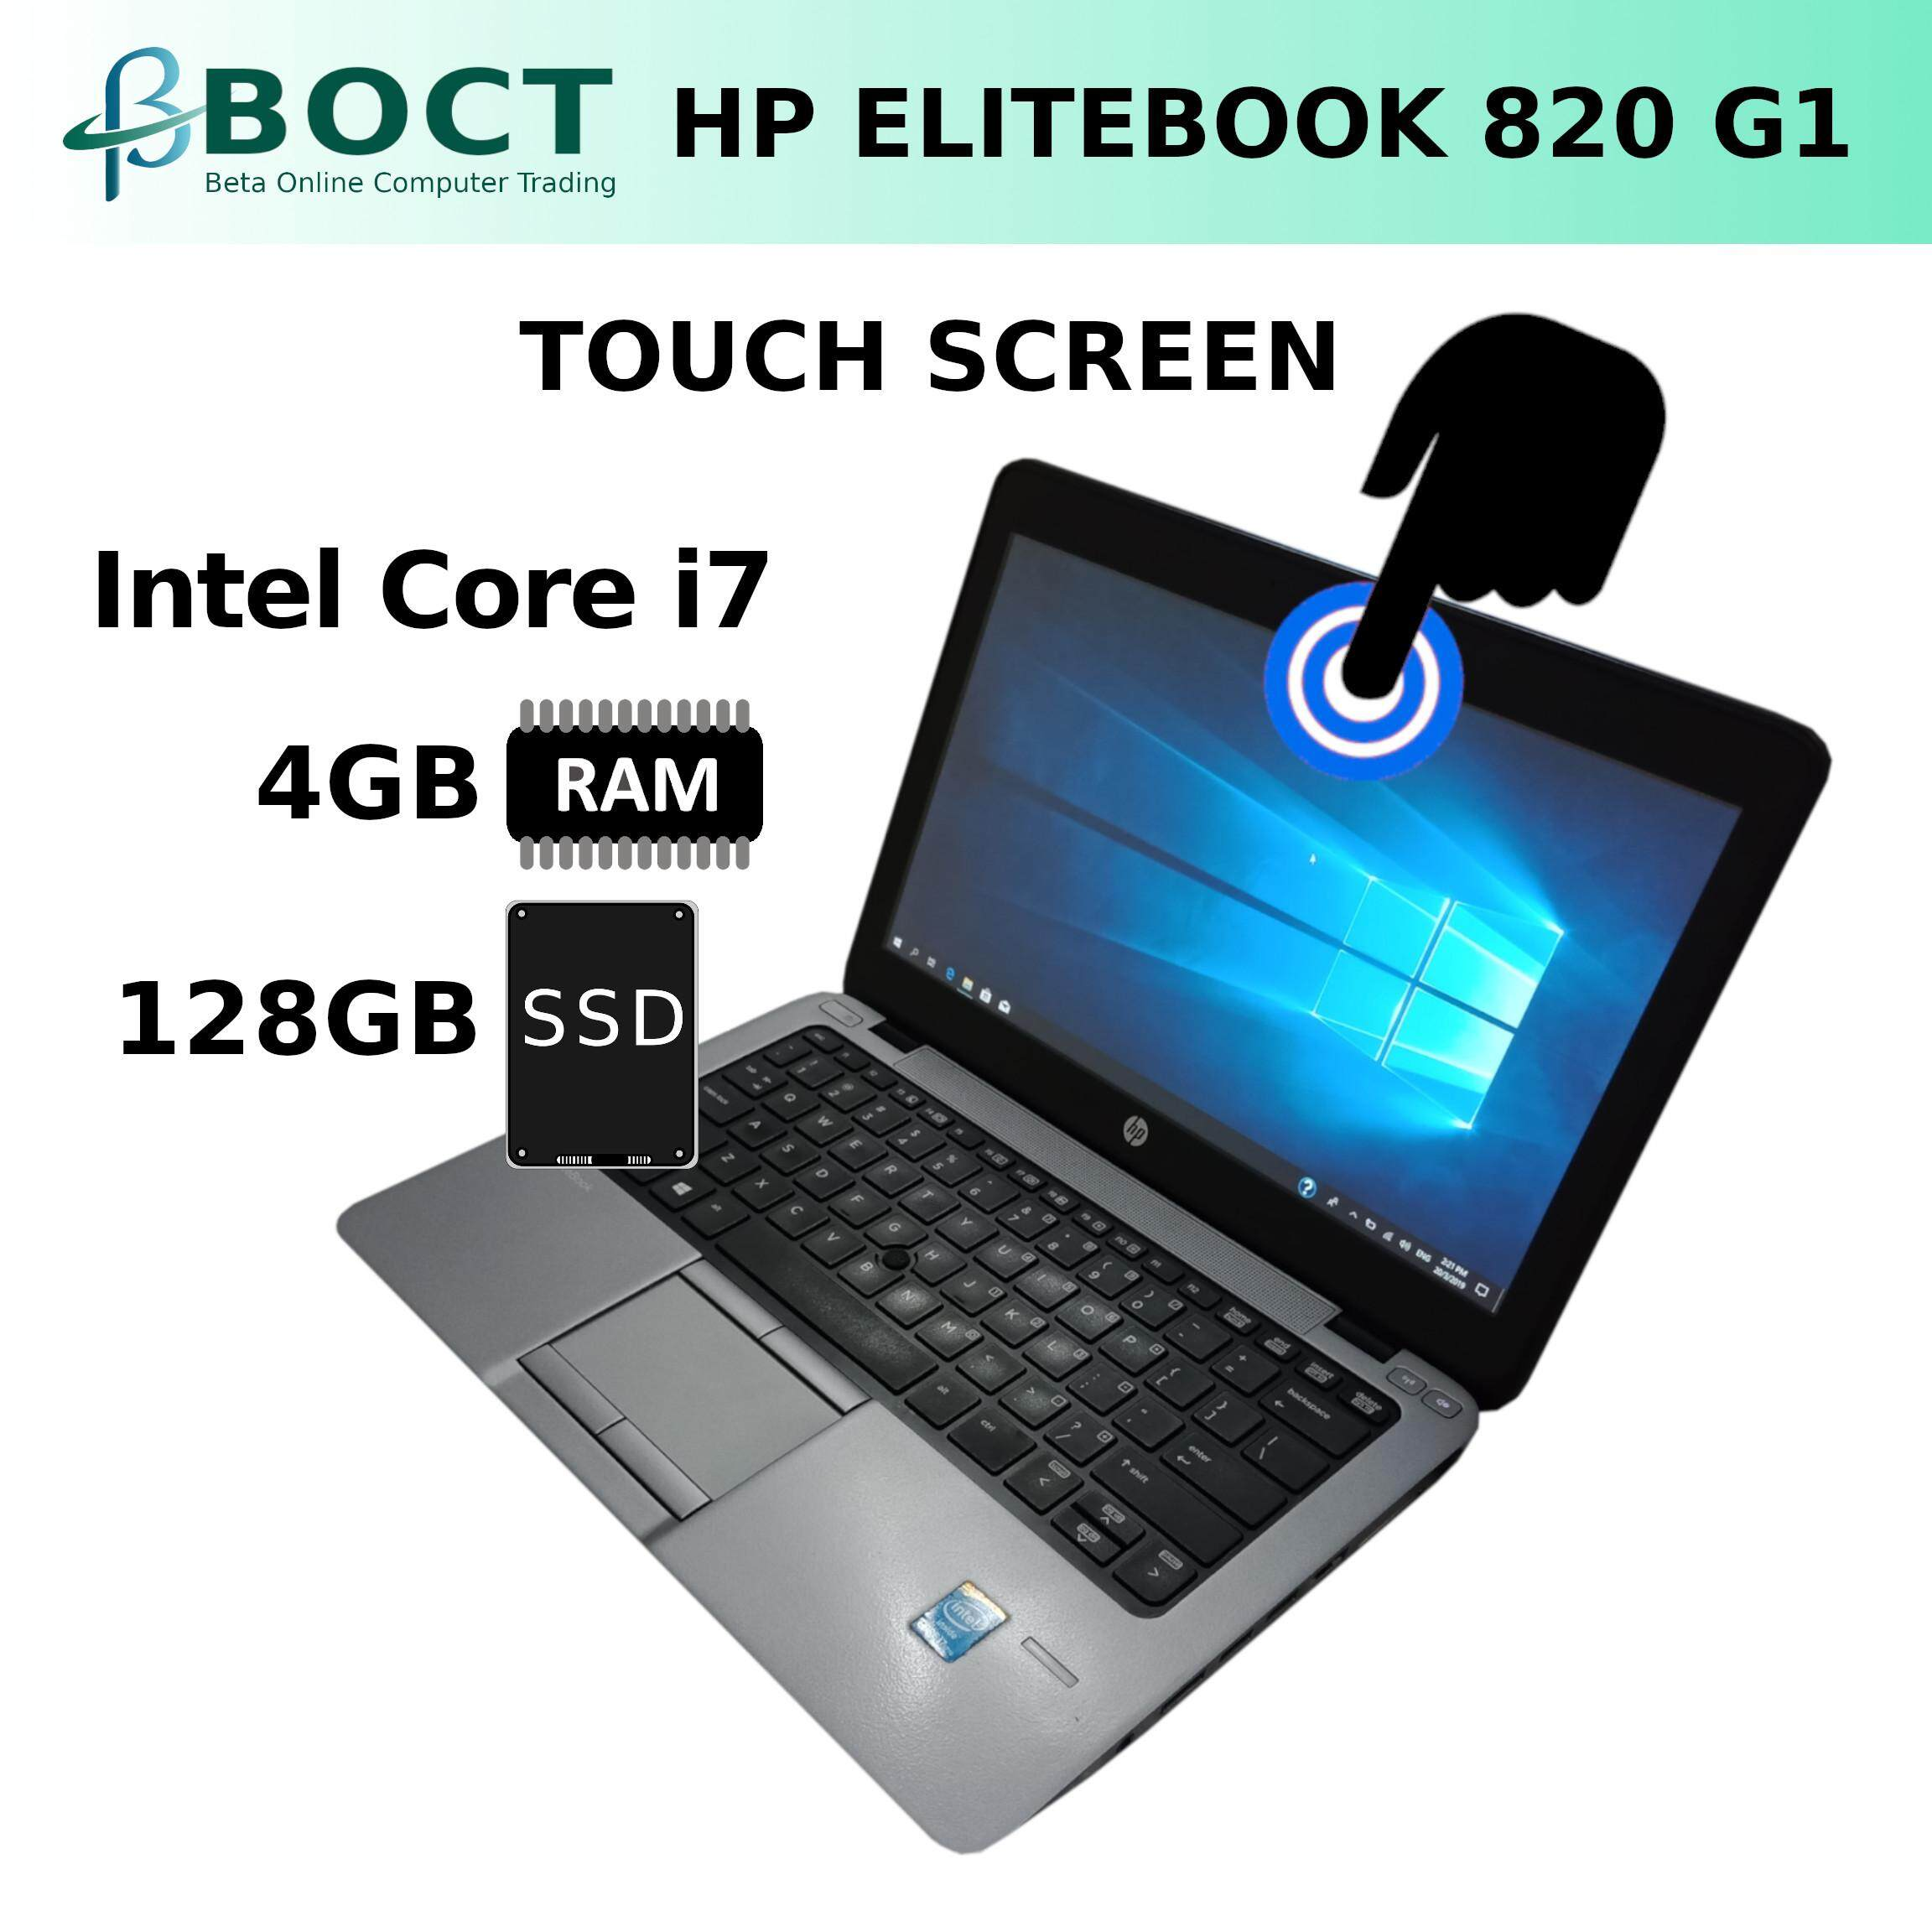 HP EliteBook 820 G1 i7-4600u 2.1GHz / 8GB / 128GB or 240GB SSD / 12.5 Touch Screen / Windows 10 Pro (Refurbished) Malaysia